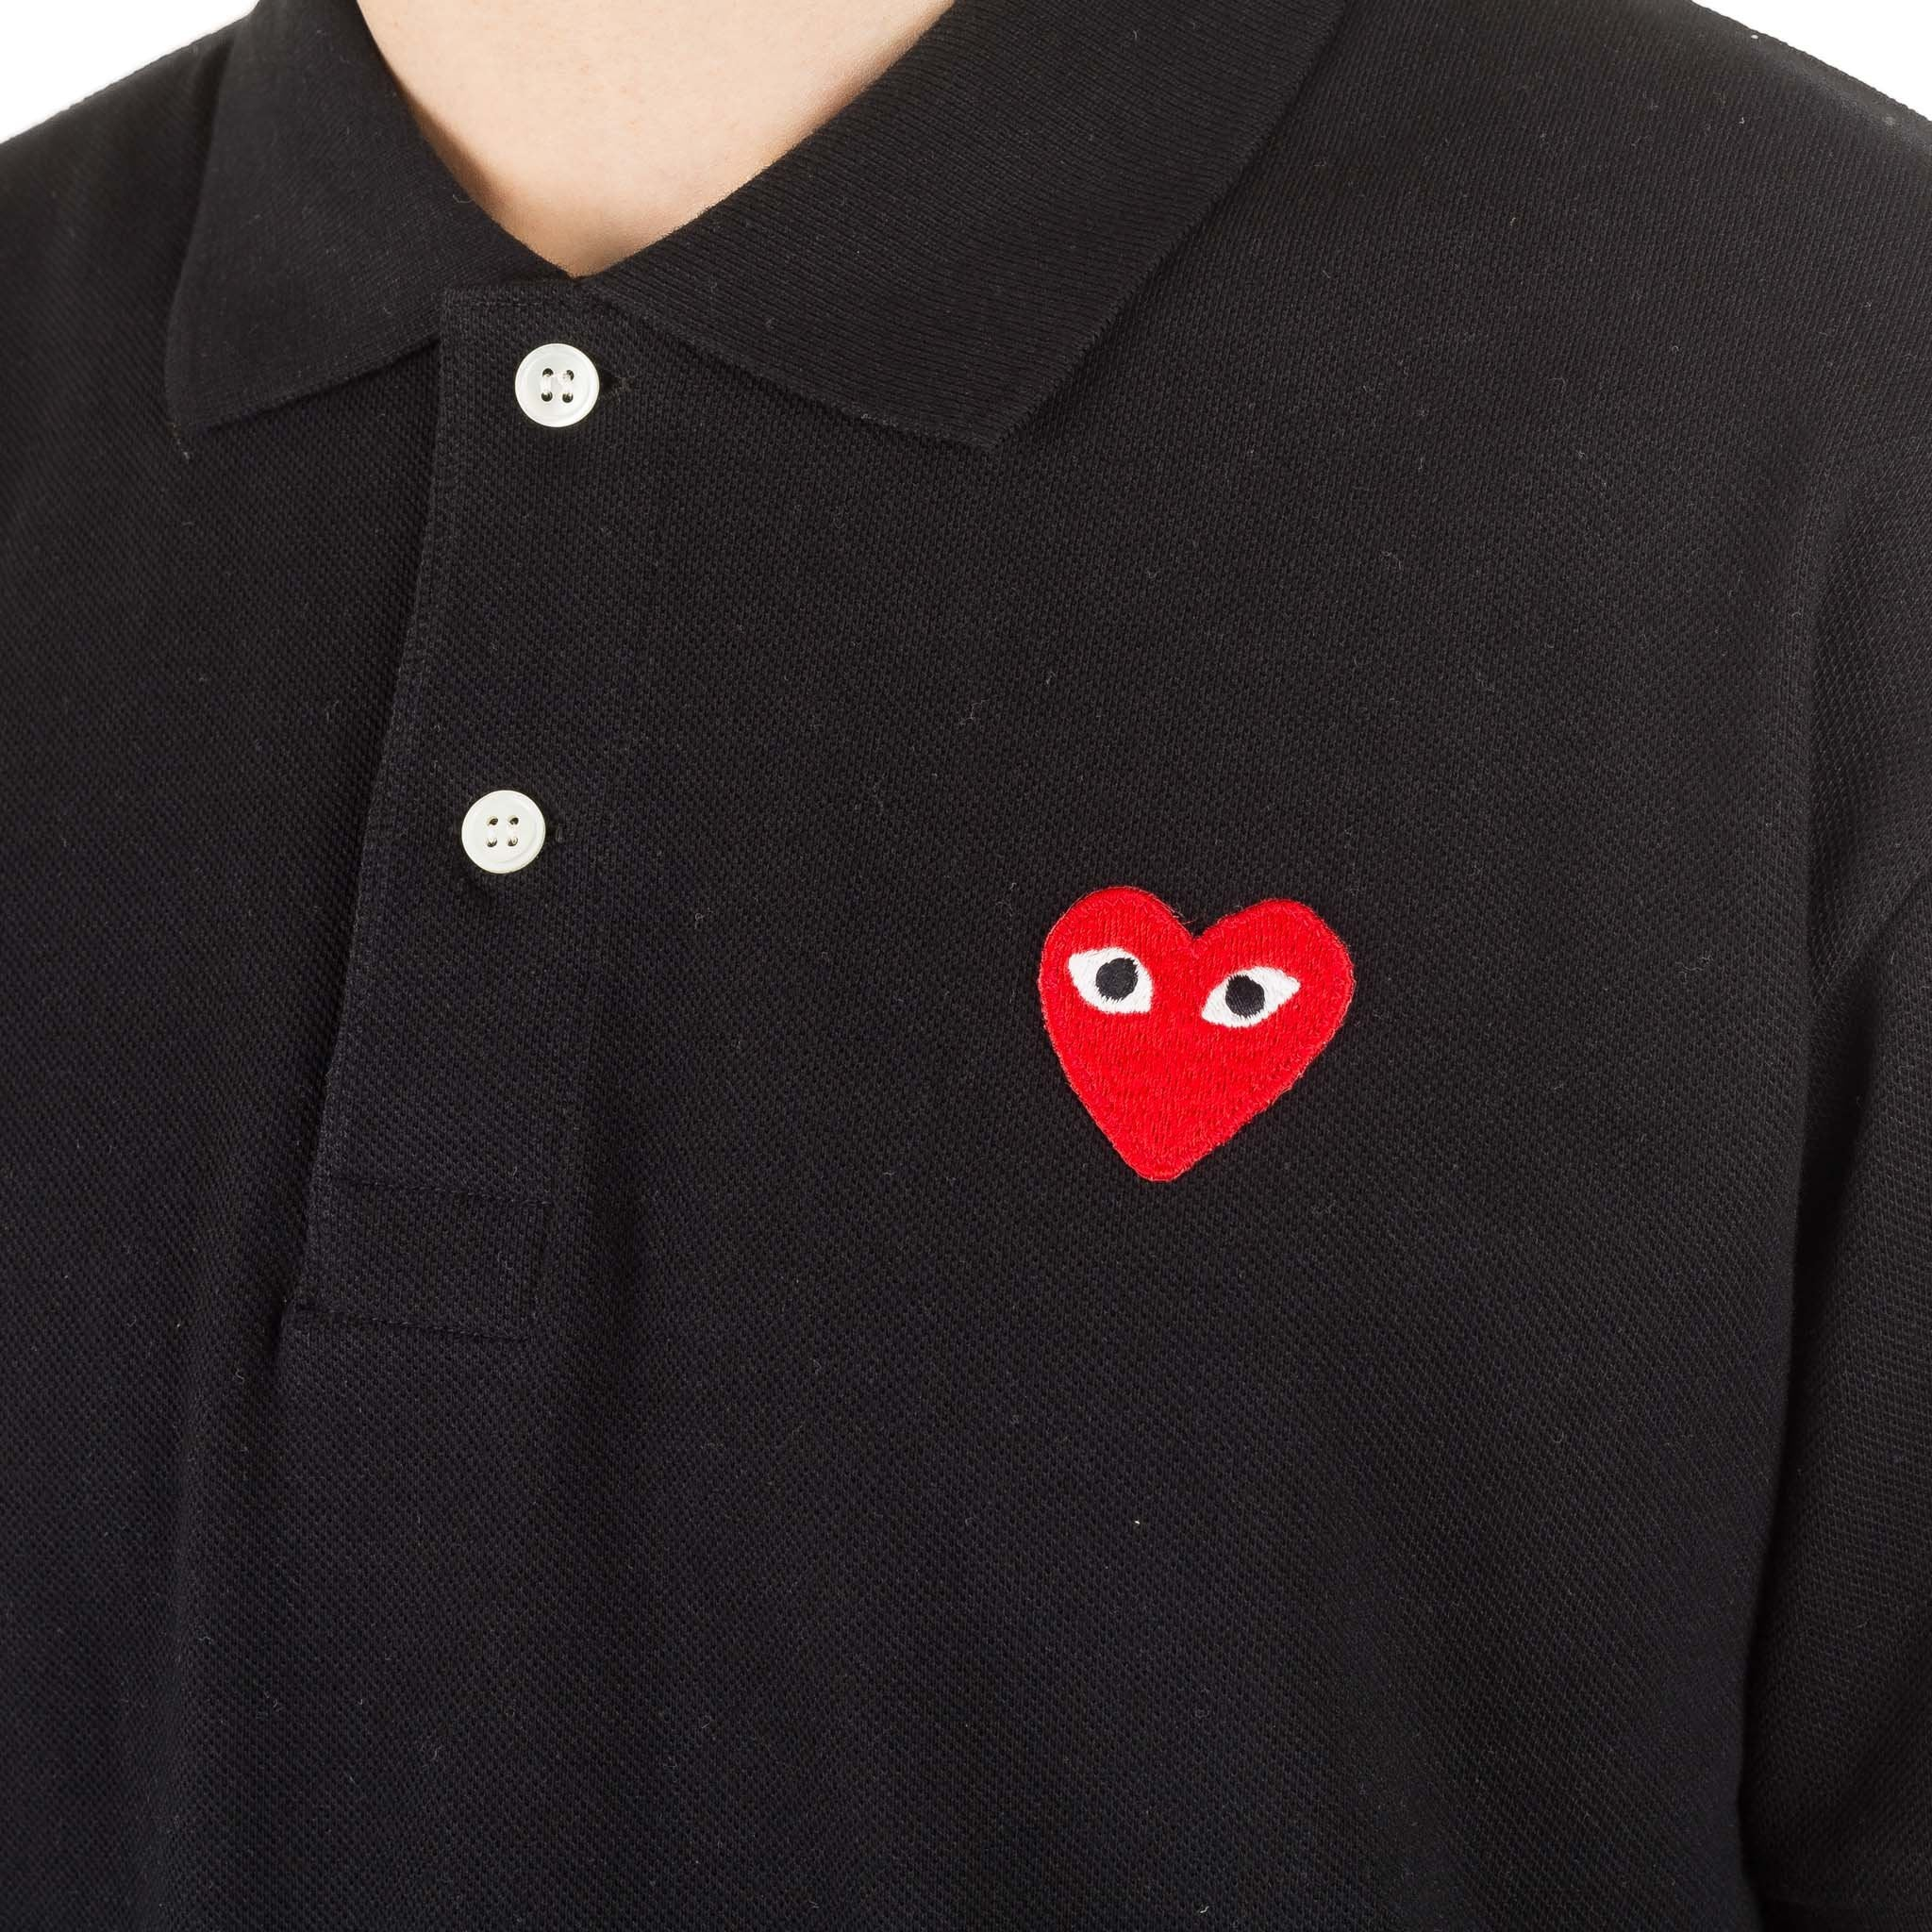 HEART LOGO AZ-T006-051-1 Polo Shirt Black